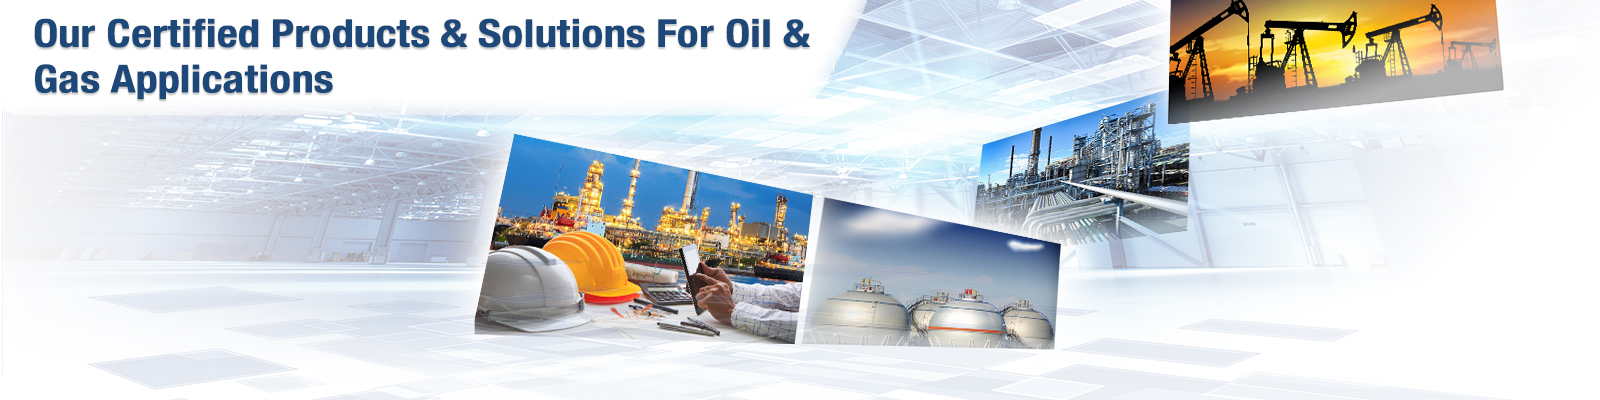 Oil& Gas Applications